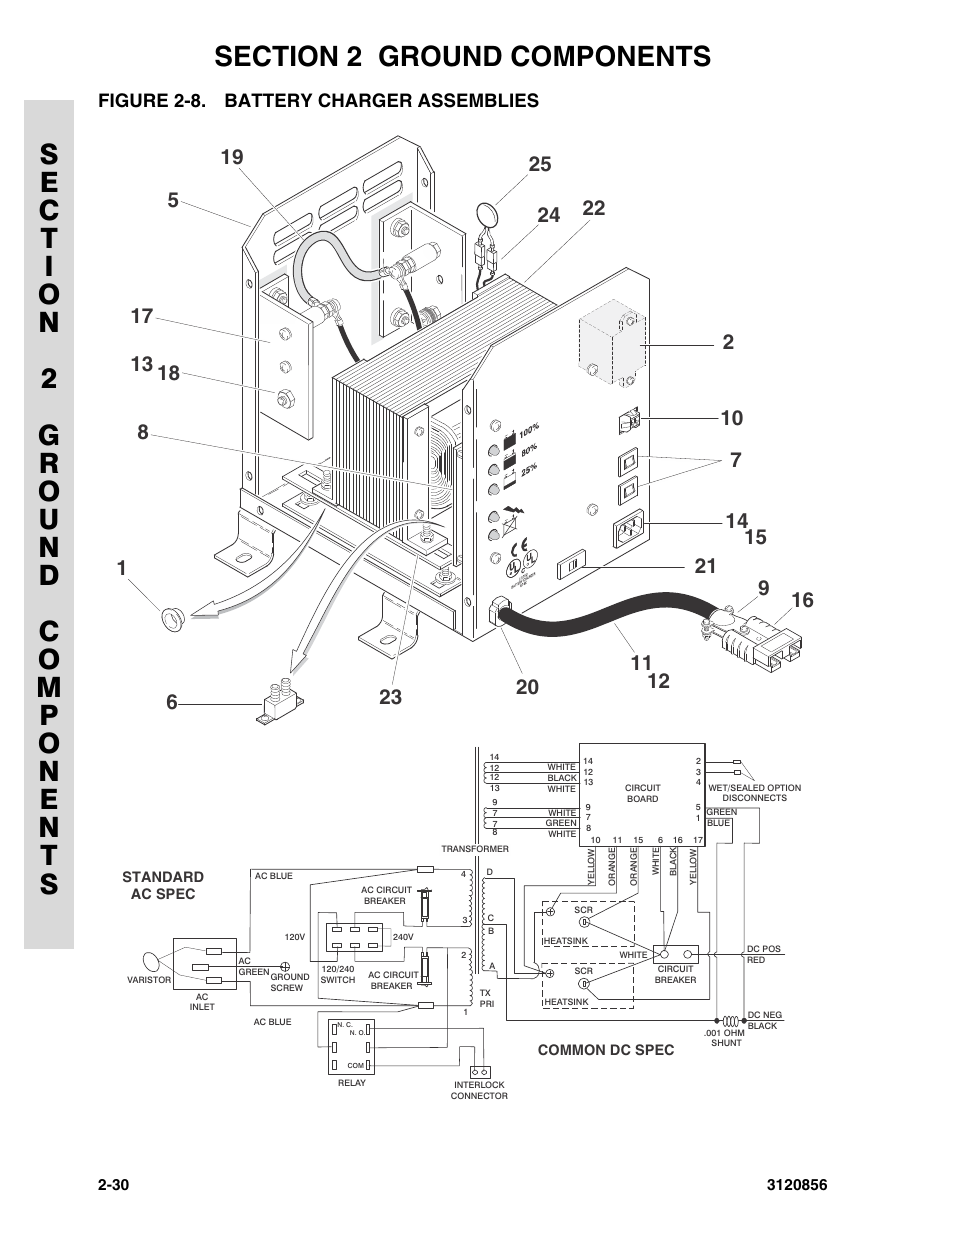 figure 2-8. battery charger assemblies | jlg 3246e2 parts ... jlg battery charger wiring schematic